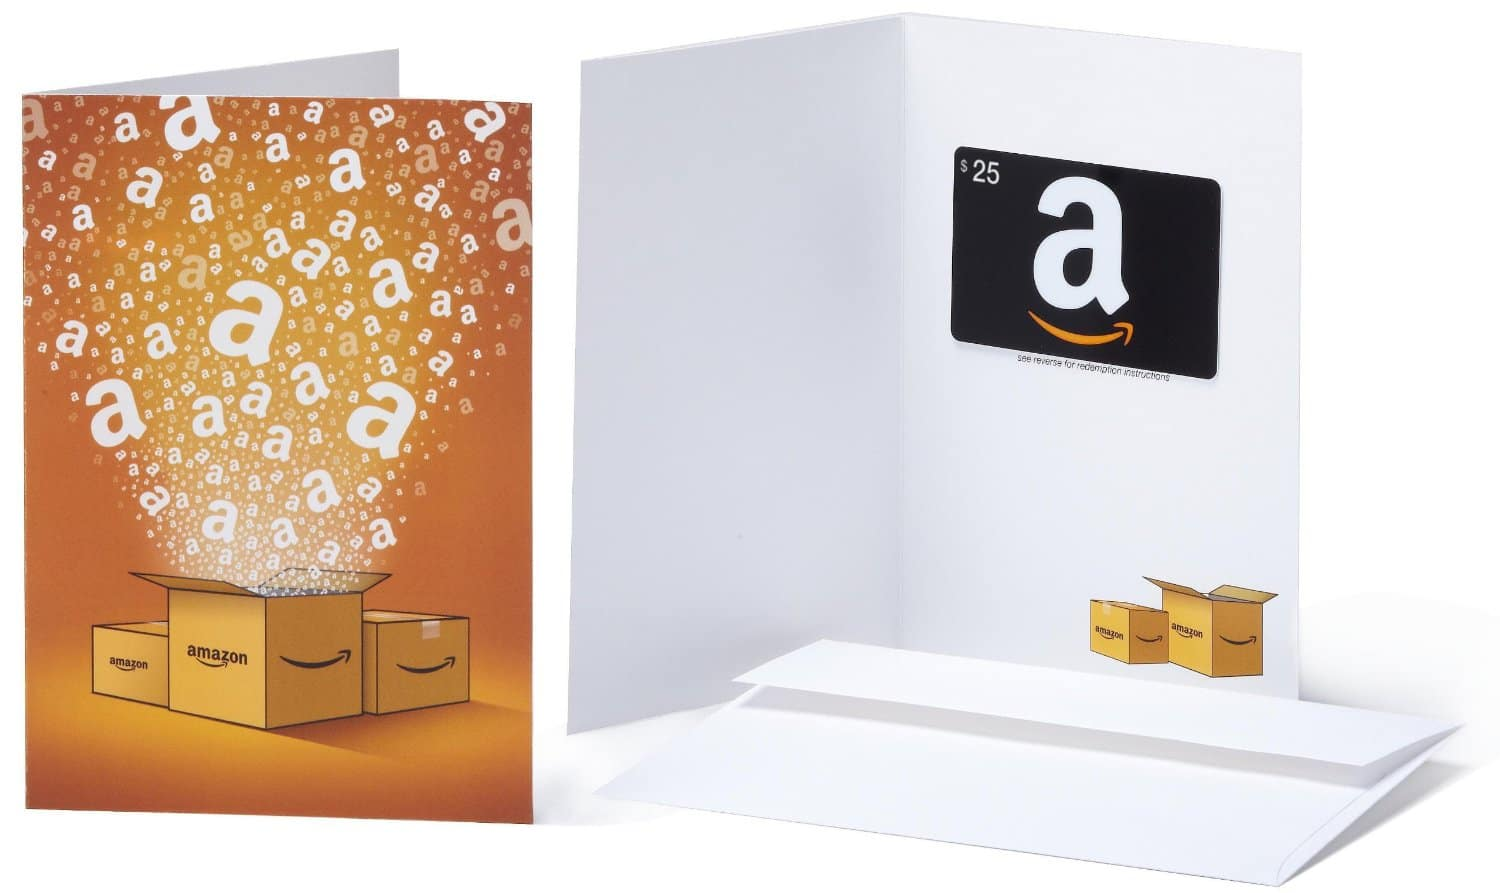 Amazon Student Offer: $25 Amazon Gift Card + $5 Promo Credit  $25 + Free S/H